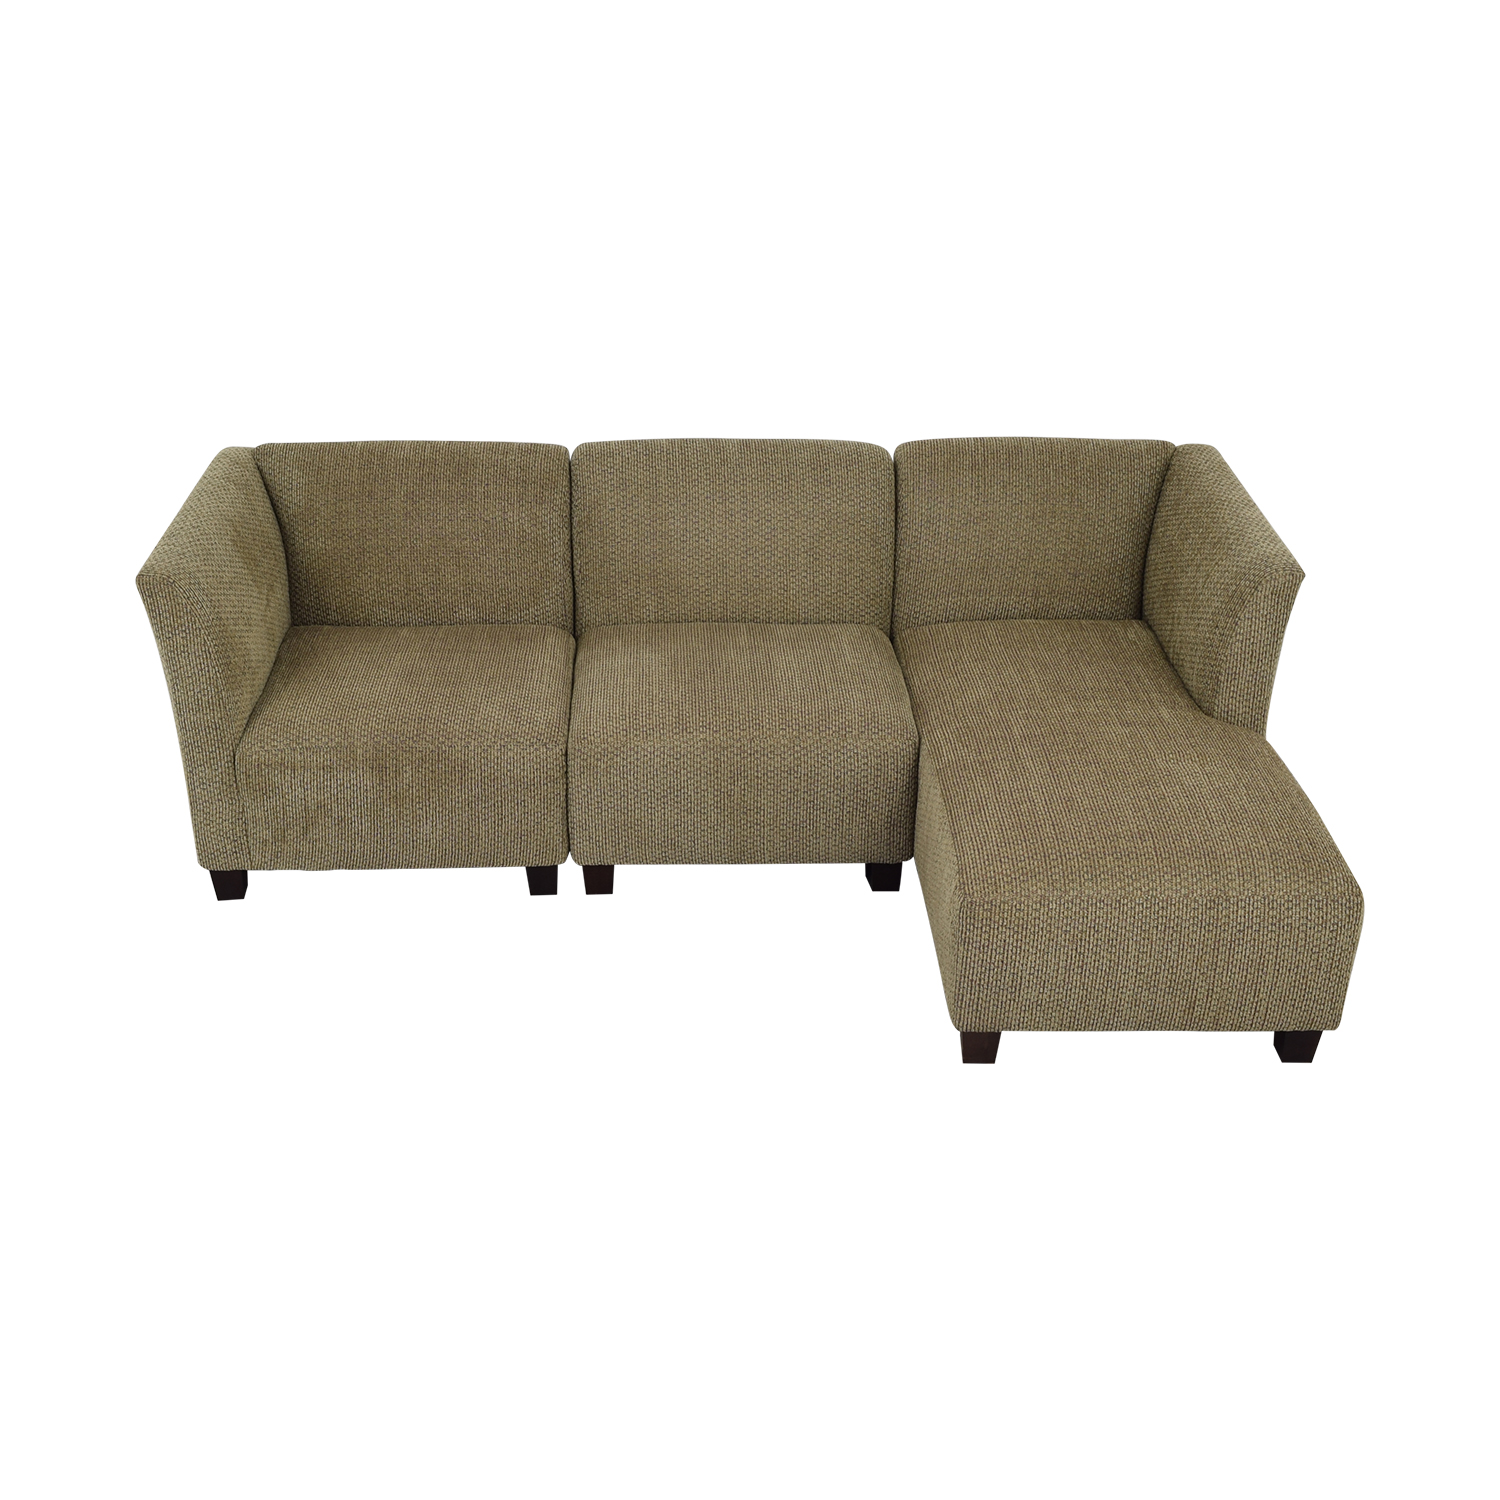 Rowe Furniture Rowe Furniture Sectional Sofa coupon